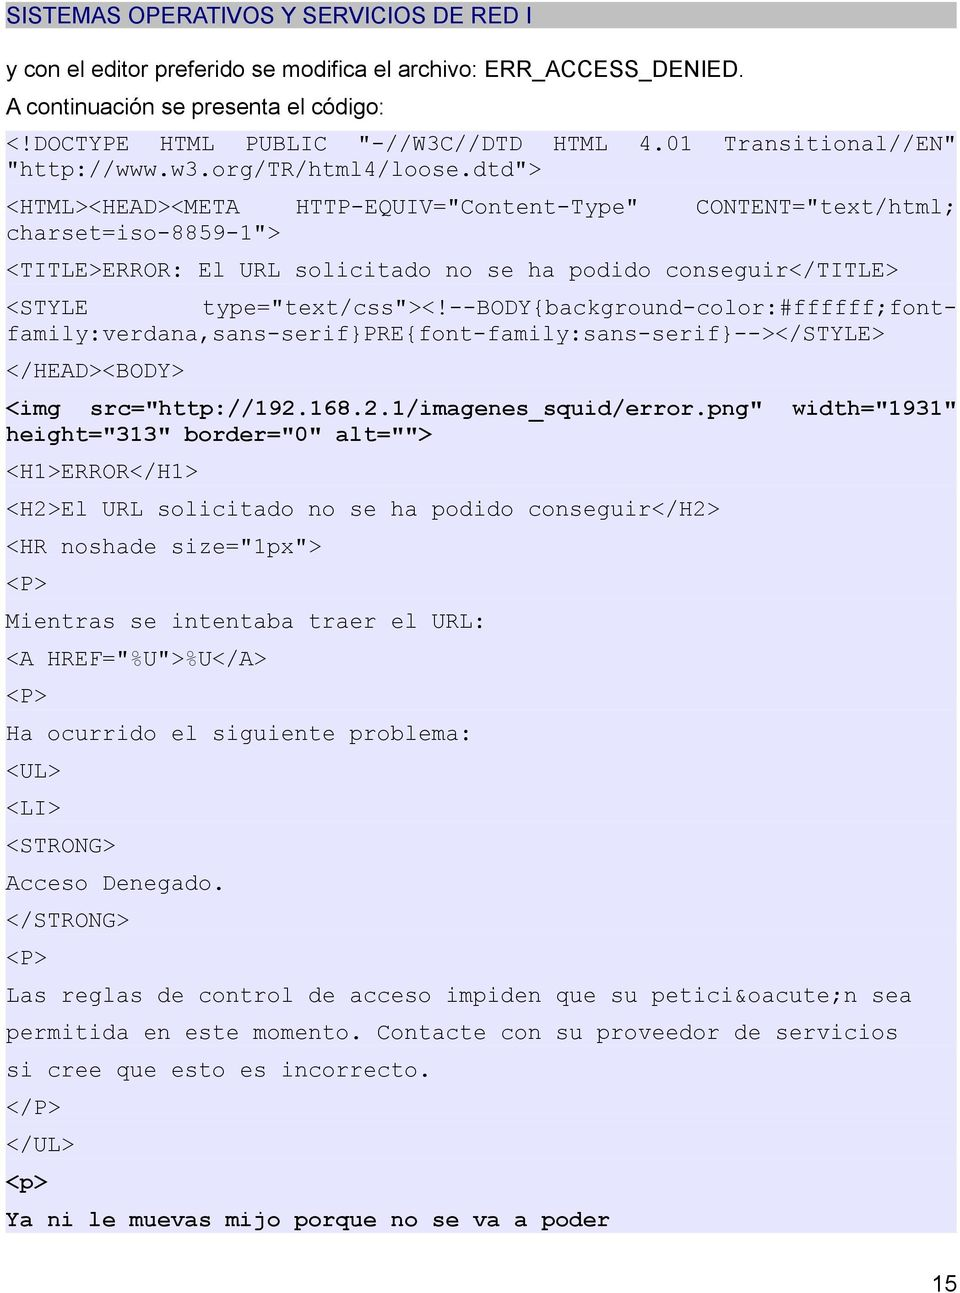 "dtd""> <HTML><HEAD><META HTTP-EQUIV=""Content-Type"" CONTENT=""text/html; charset=iso-8859-1""> <TITLE>ERROR: El URL solicitado no se ha podido conseguir</title> <STYLE type=""text/css""><!"